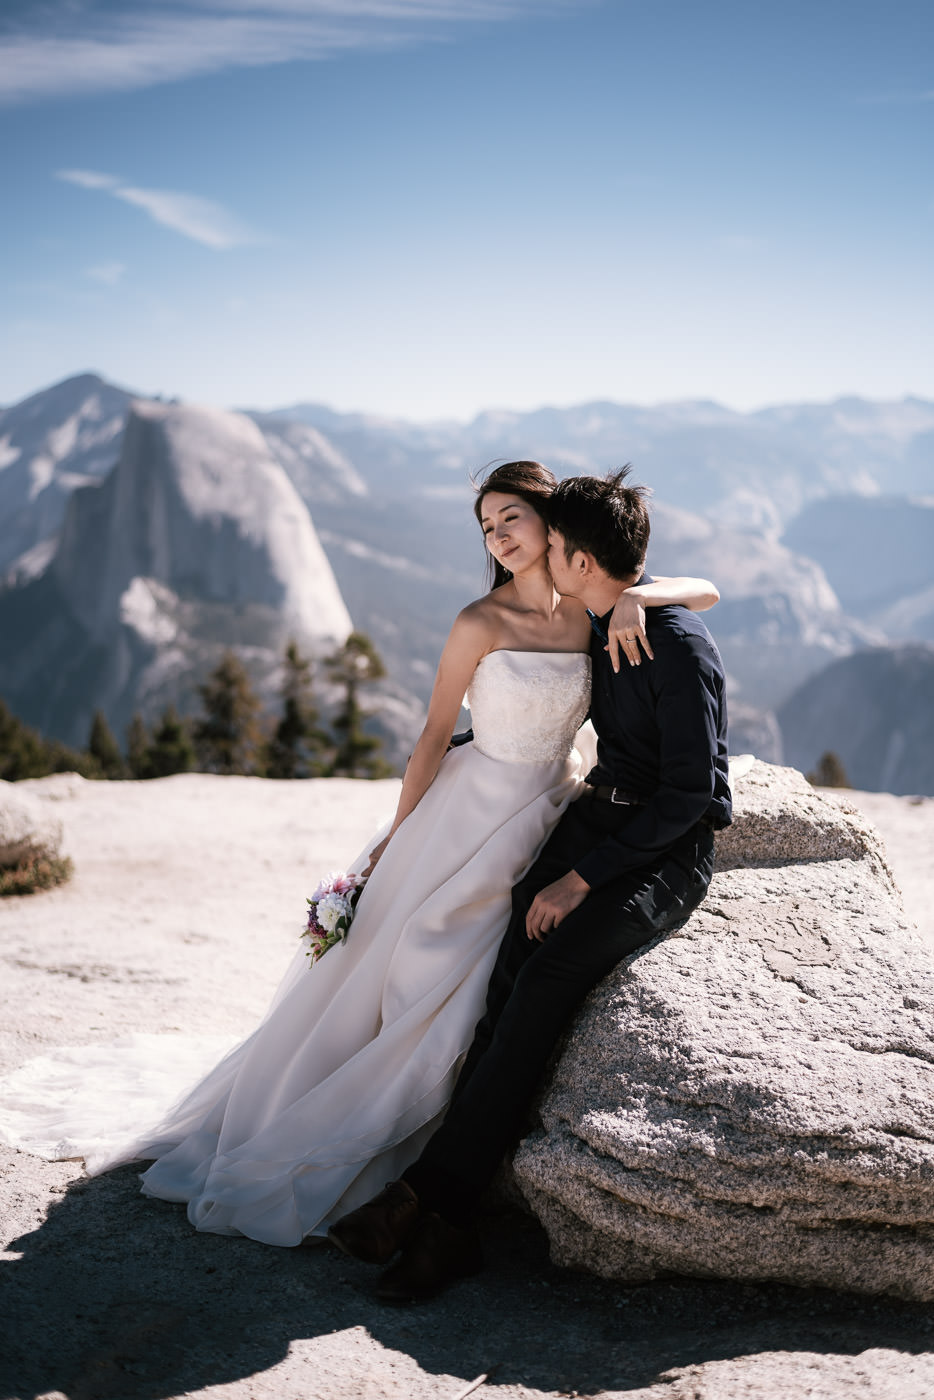 Wedding photographer captures groom as he kisses his new wife's neck as she smiles.